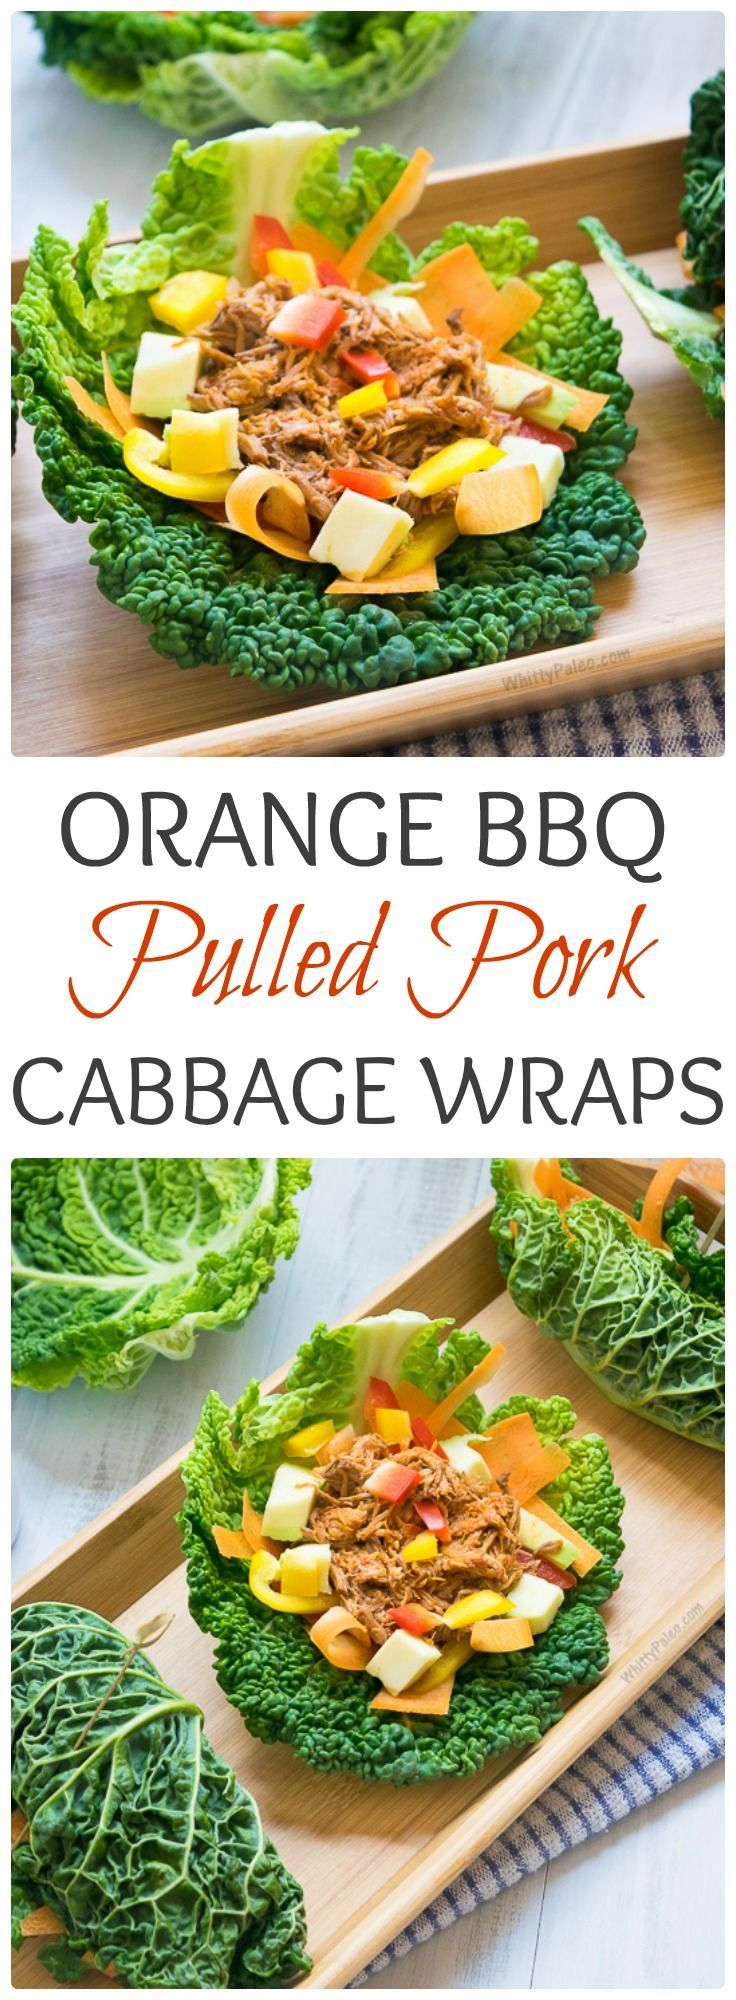 Orange BBQ Pulled Pork Cabbage Wraps from http://WhittyPaleo.com